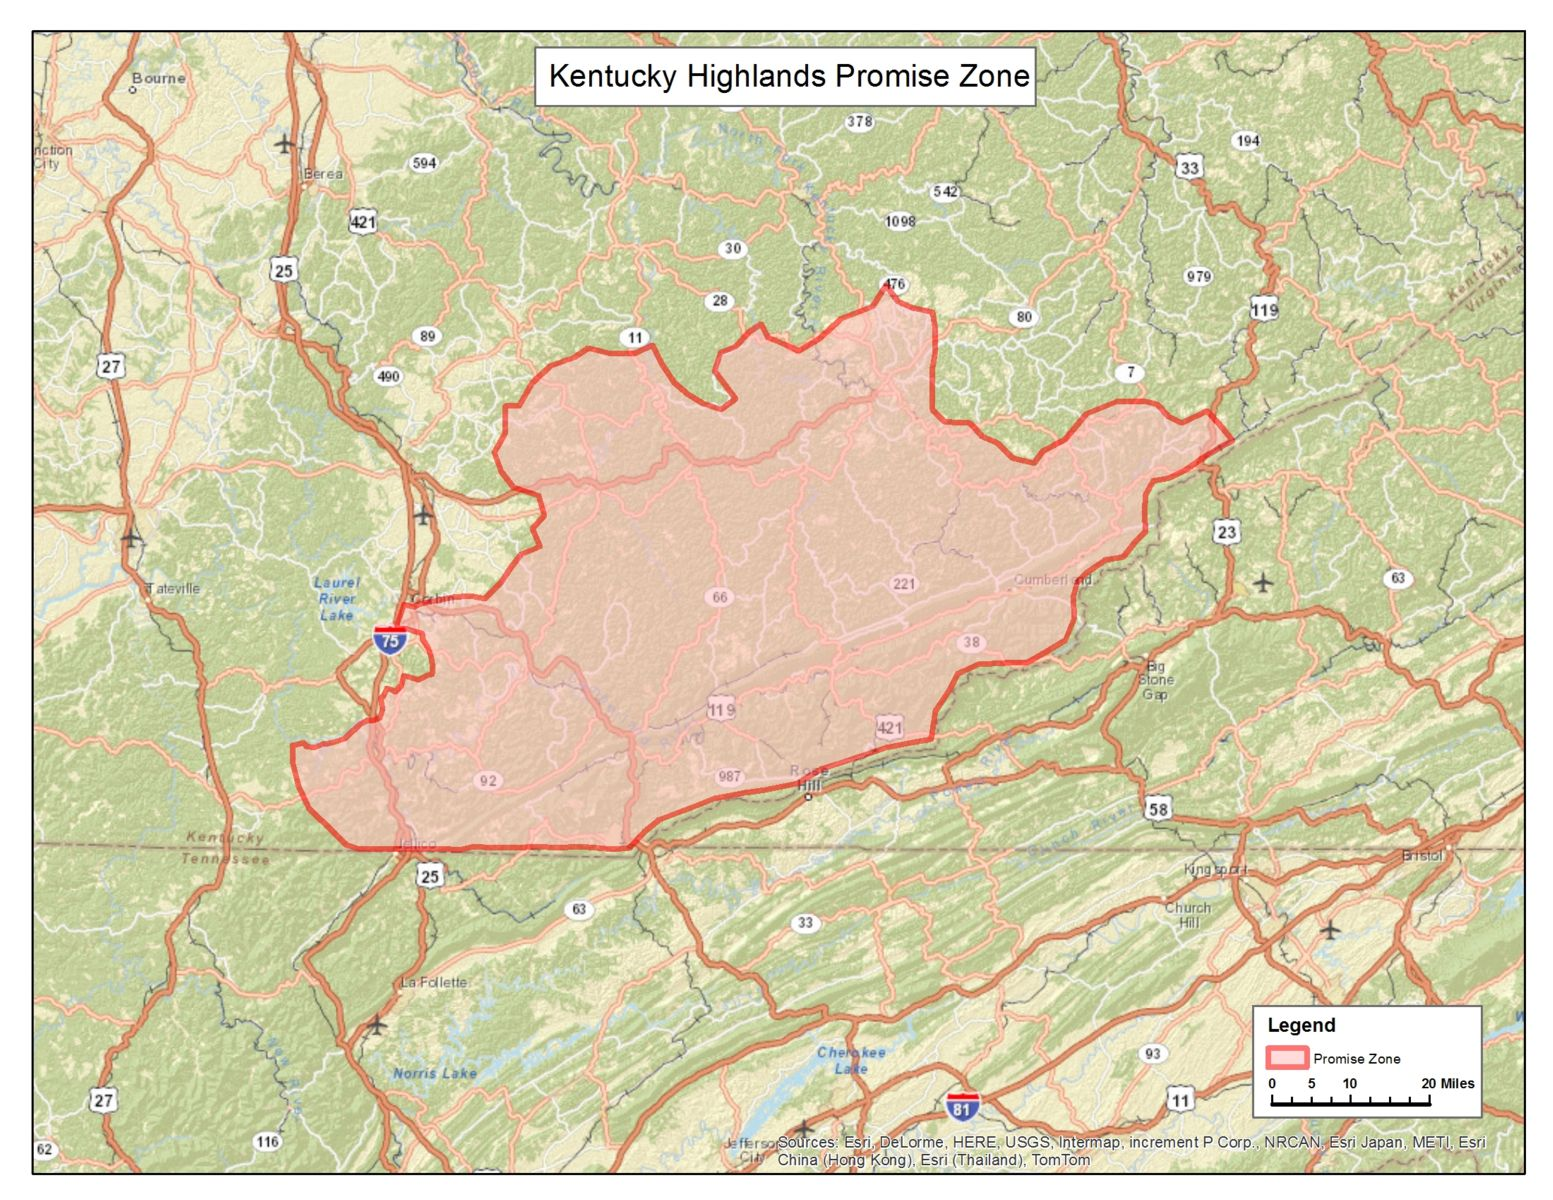 Kentucky Highlands Promise Zone Map